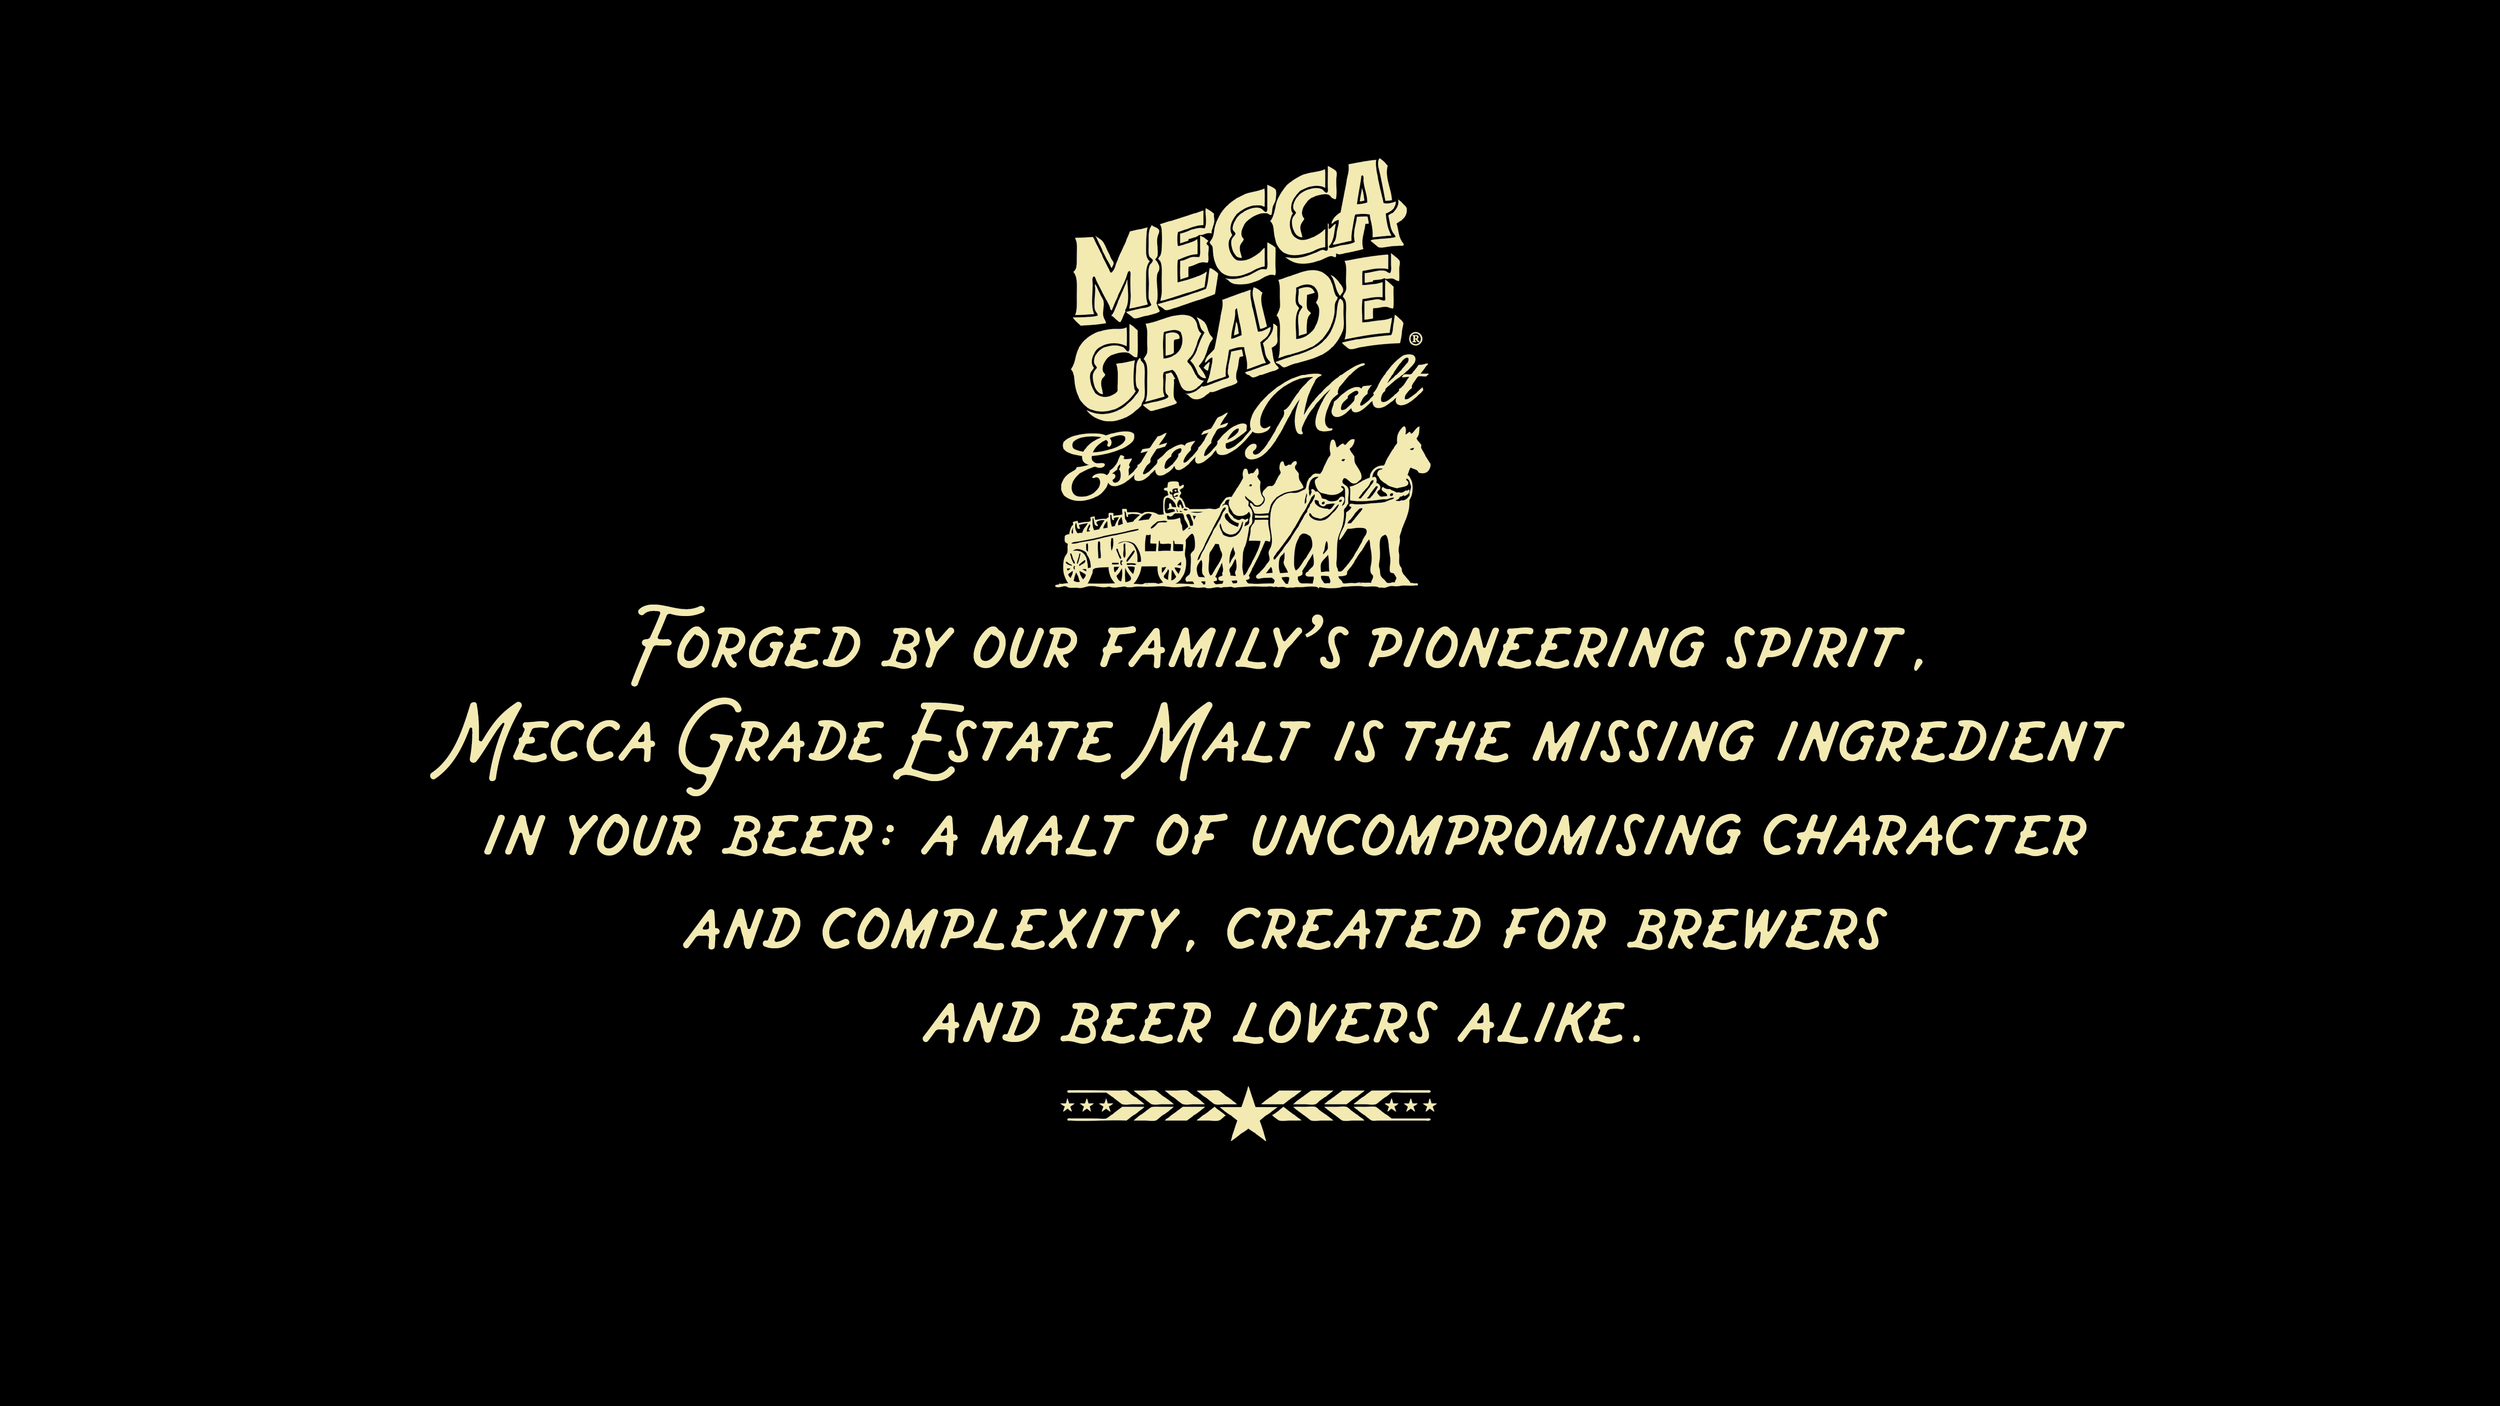 You don't know what you are until you can say it in a language everyone can understand – to help Mecca Grade Estate Malt stand out from the crowd, we took a stand for the intangibles that make all the difference in a malt: the rich character and complexity bred into every batch by a family that never compromises.